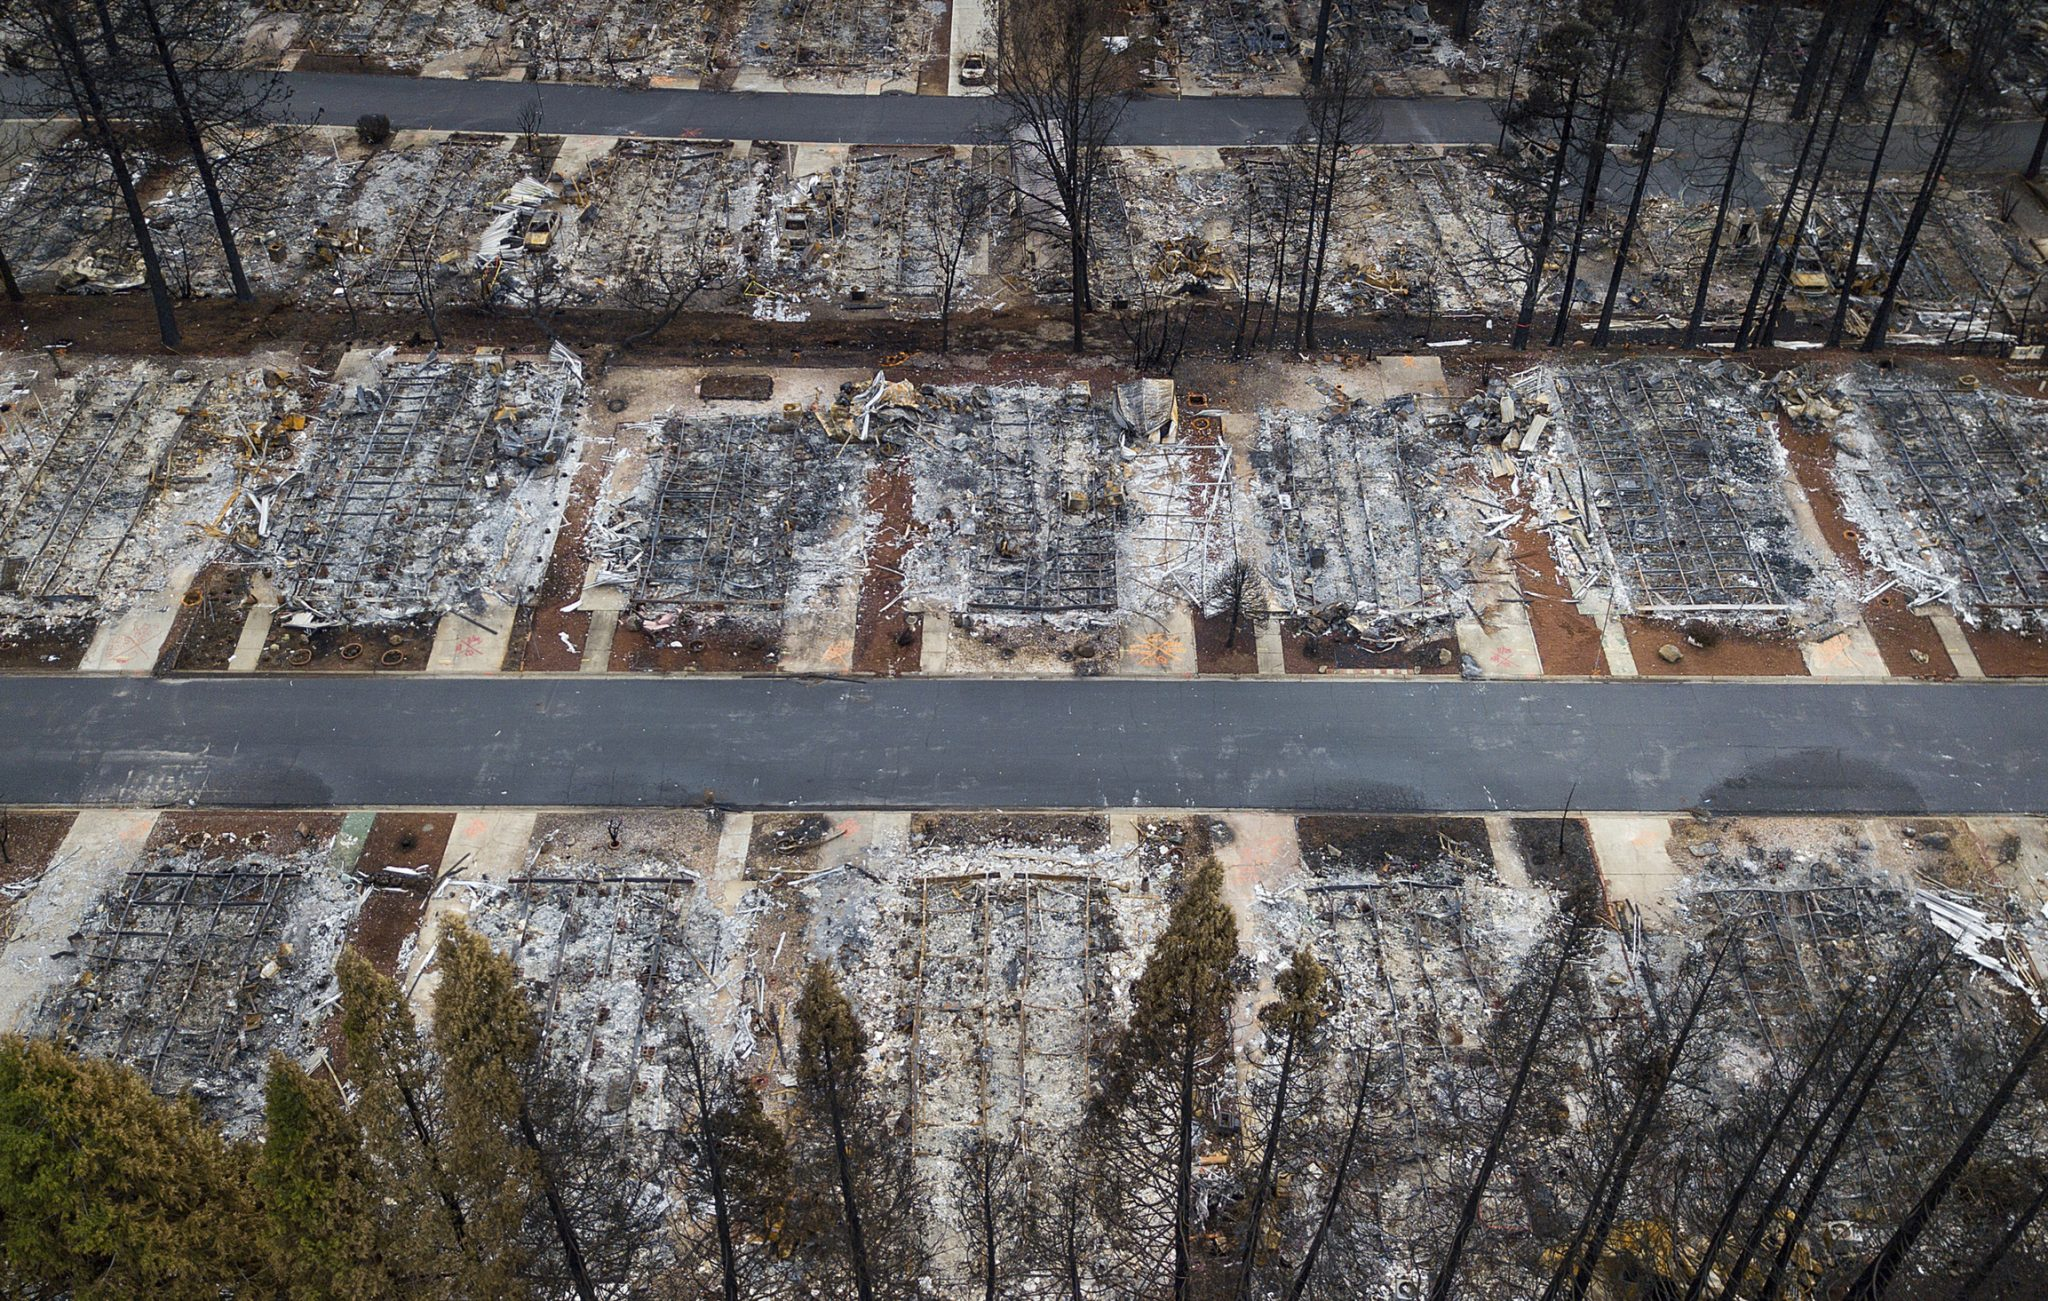 Insurance claims from deadly California wildfires top $12B